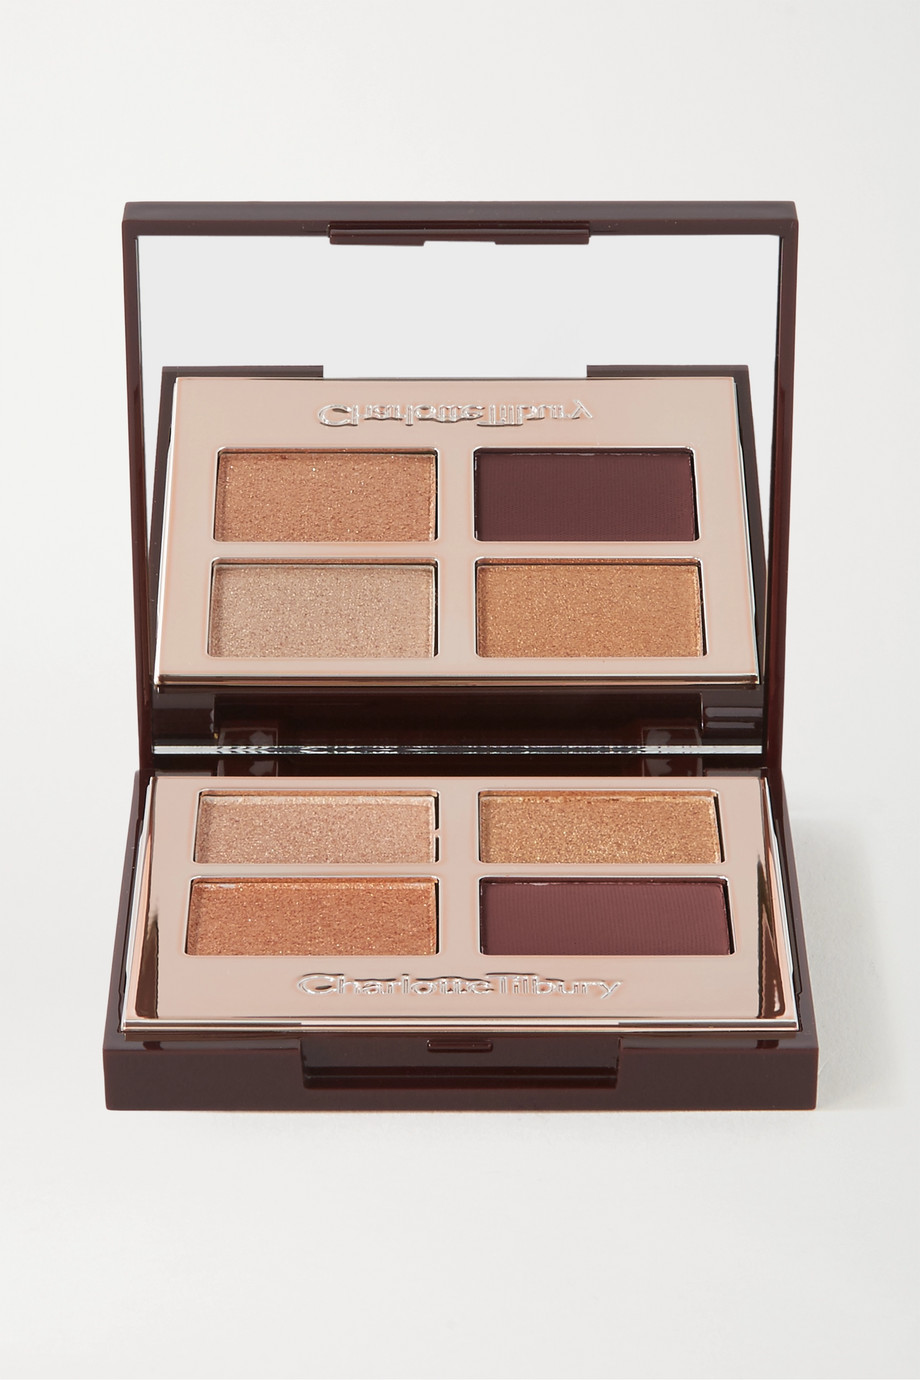 Charlotte Tilbury Luxury Palette Colour Coded Eye Shadow - The Queen Of Glow